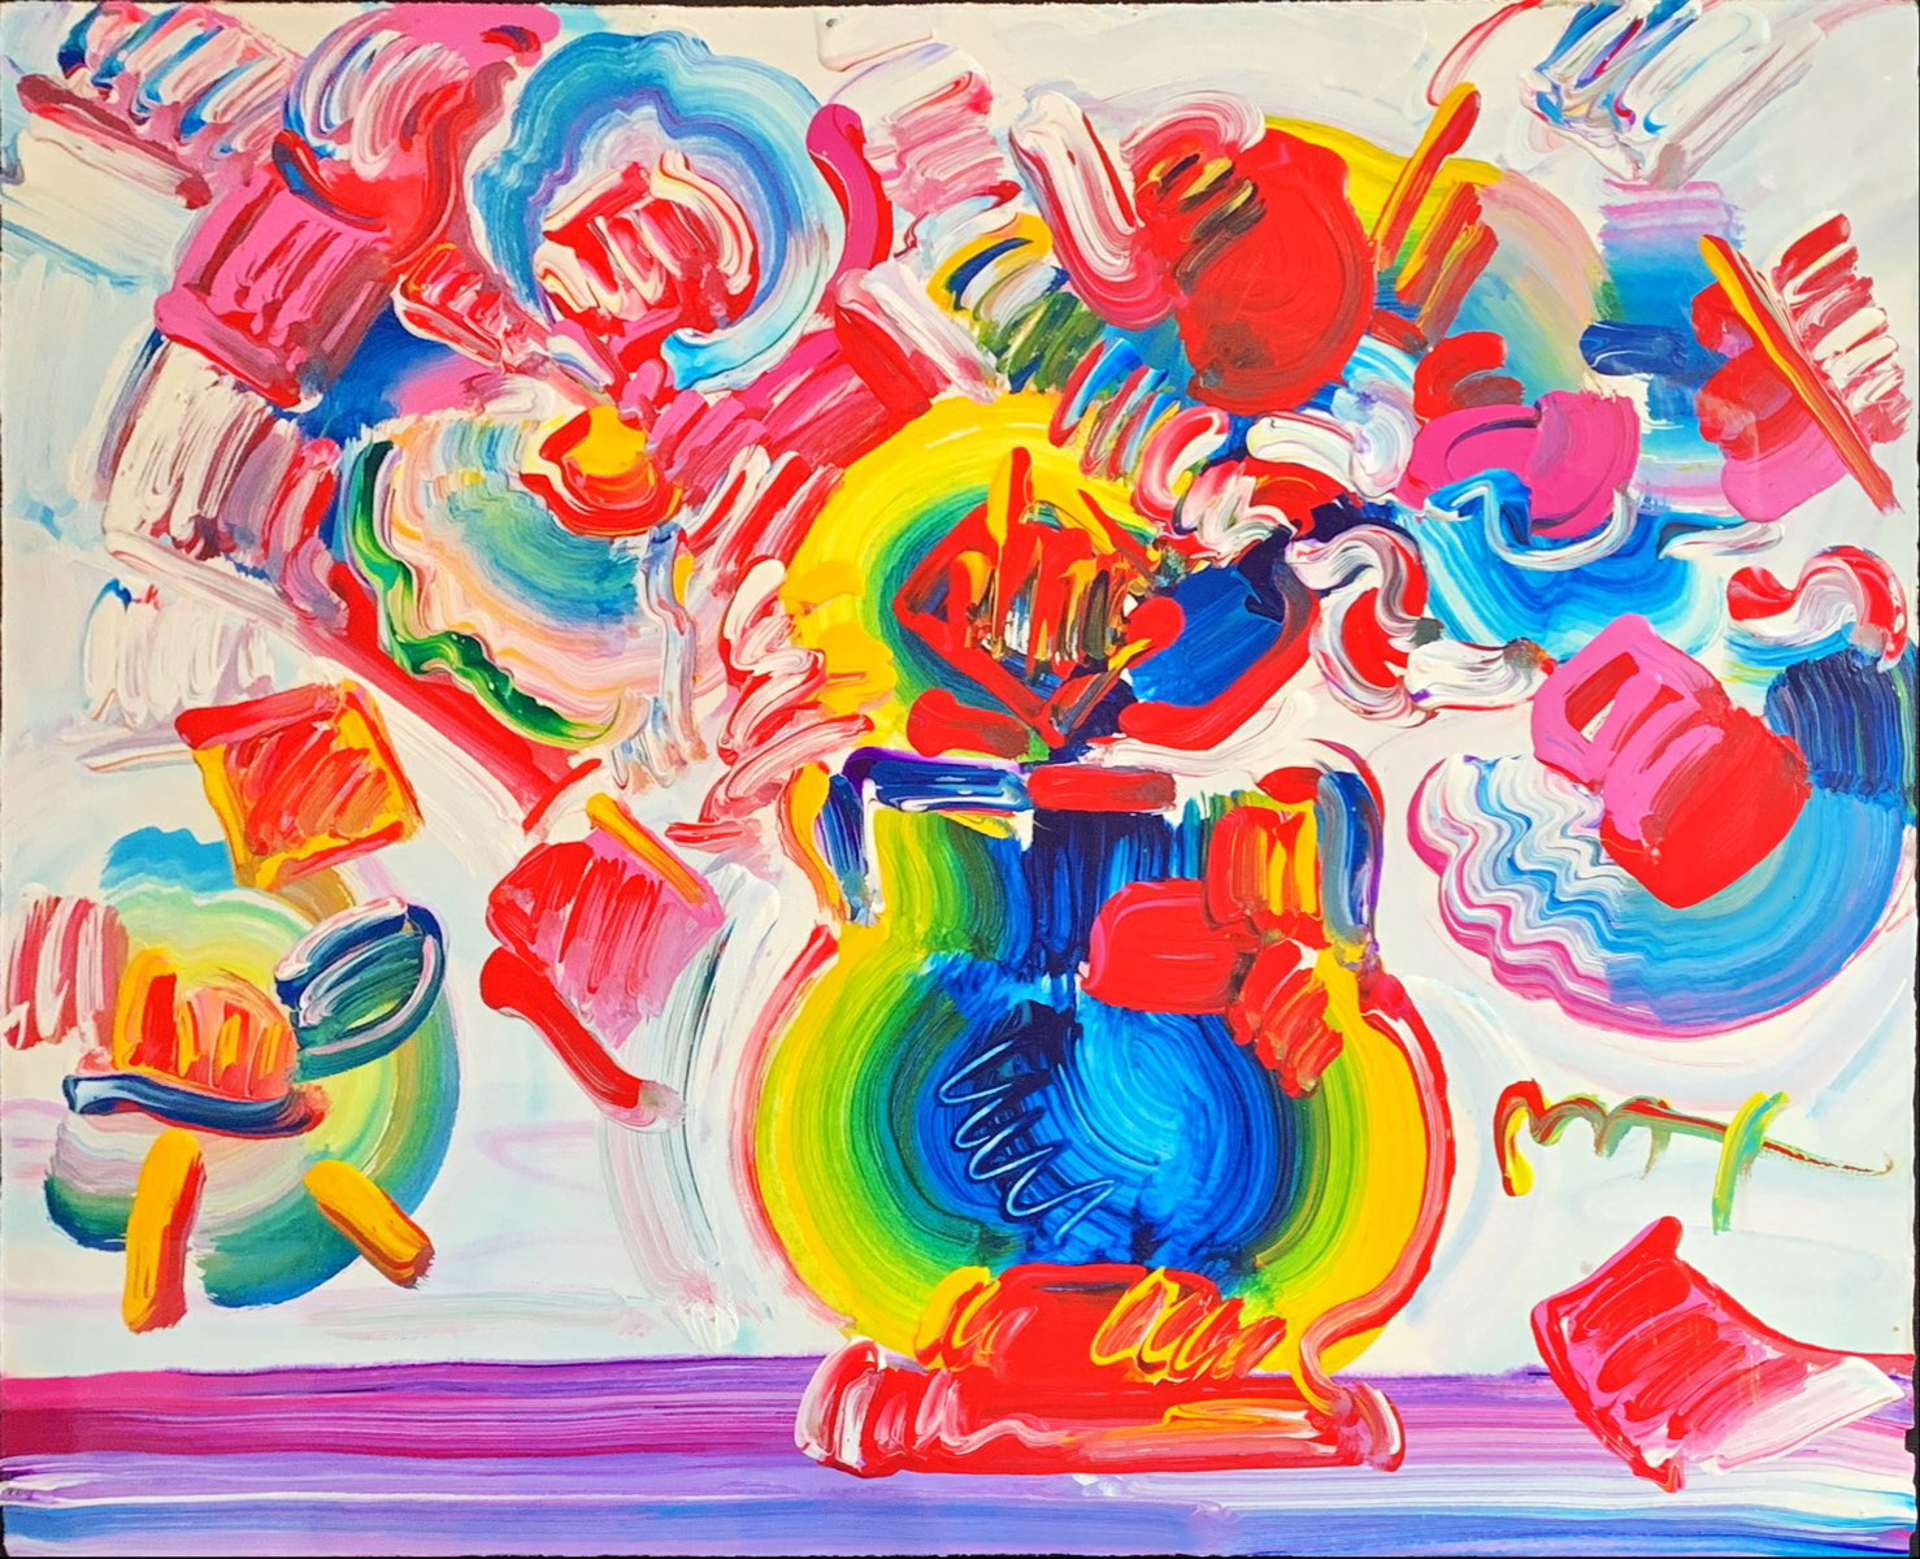 Vase of Flowers by Peter Max